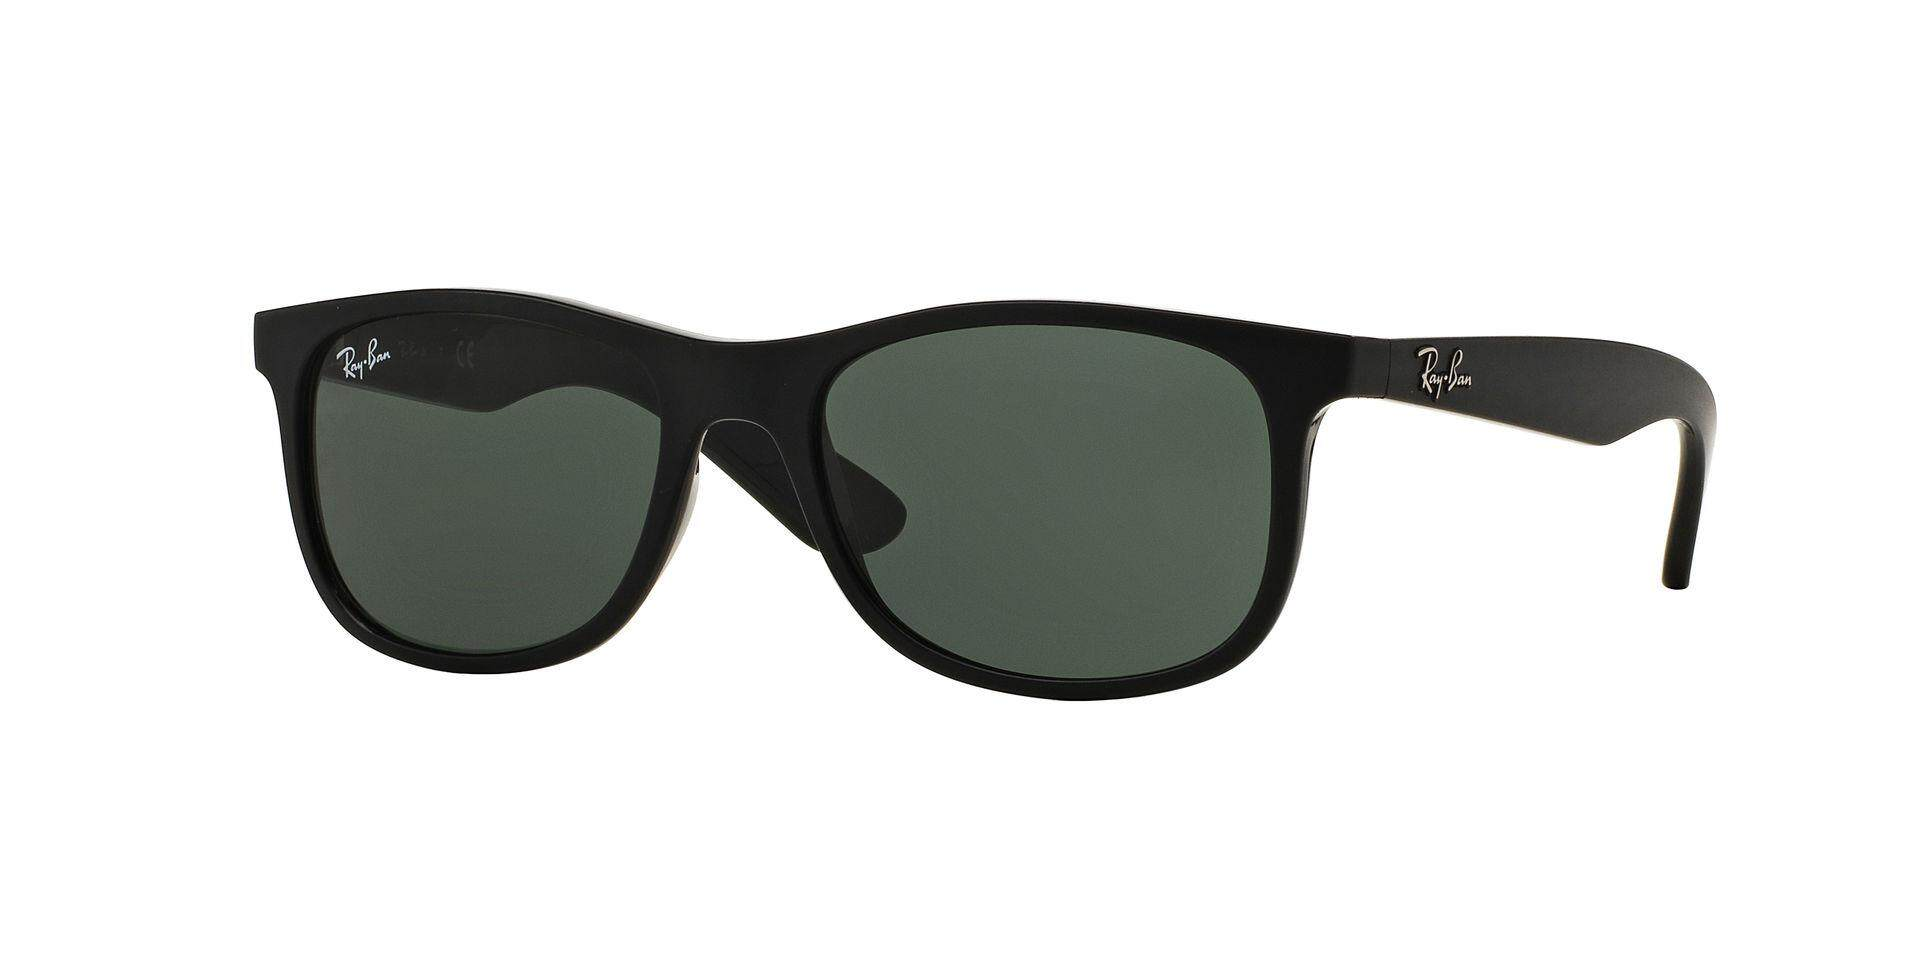 Ray Ban Products for the Best Price in Malaysia 4a3ad5fcb4ba